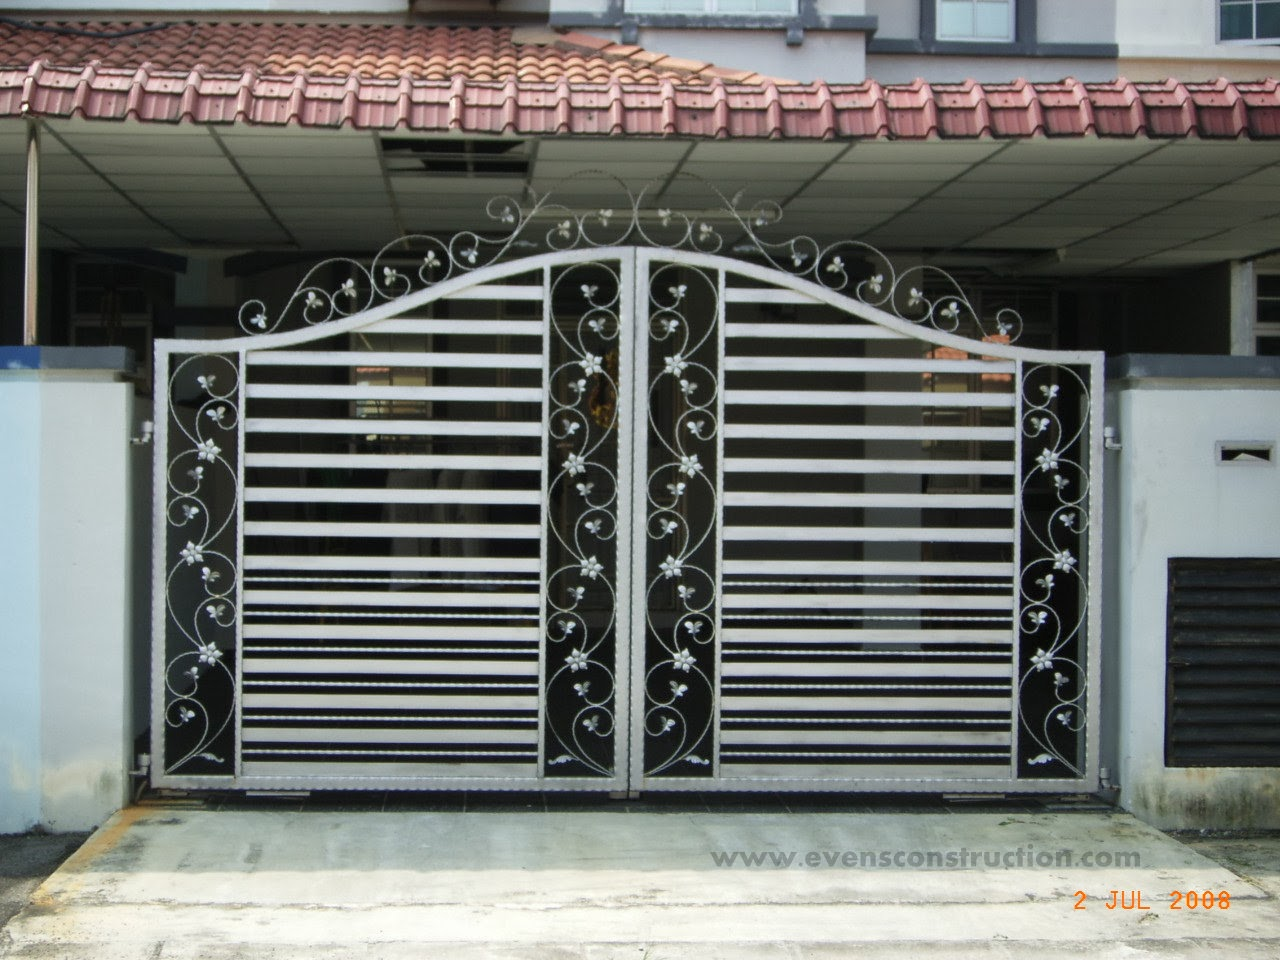 Design Of Compound Wall Gate : Gate designs compound wall